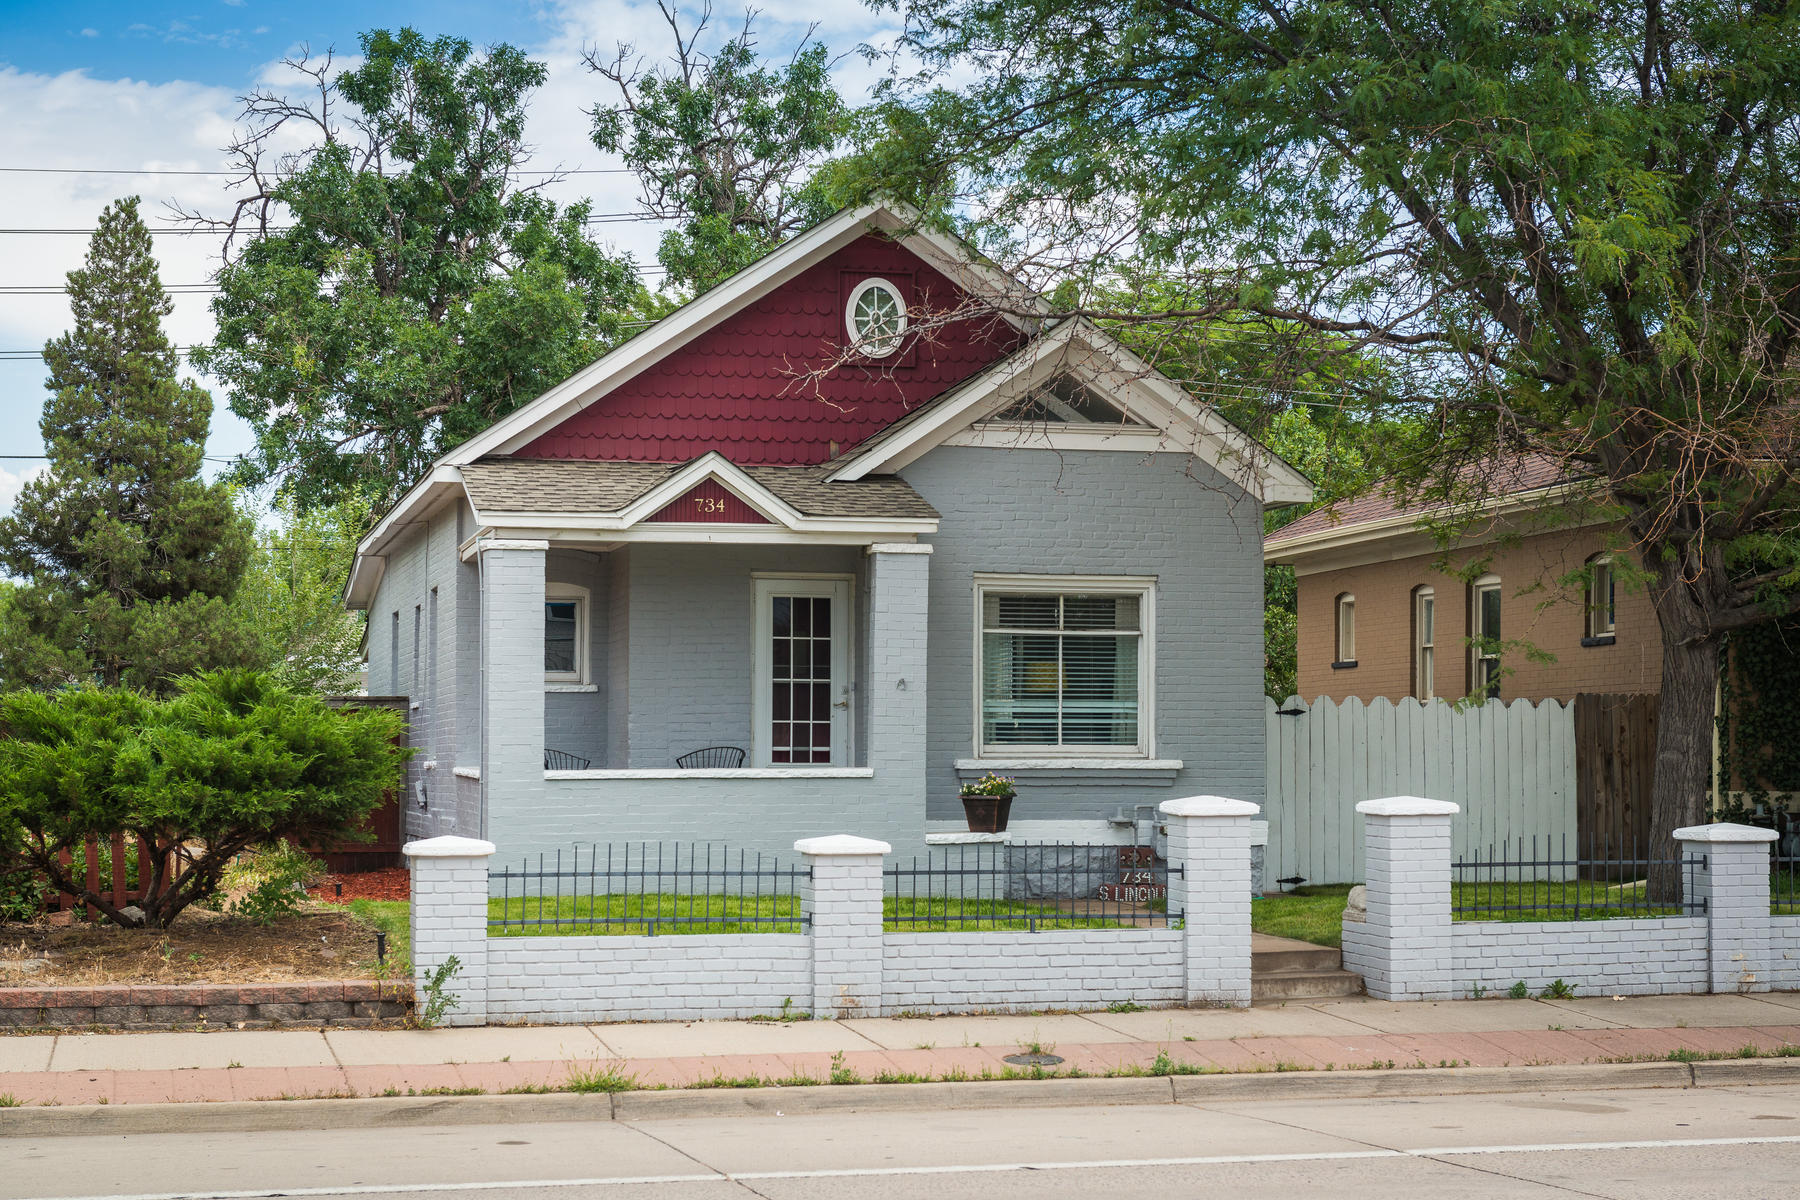 Single Family Home for Active at 734 South Lincoln Street Denver, Colorado 80209 United States